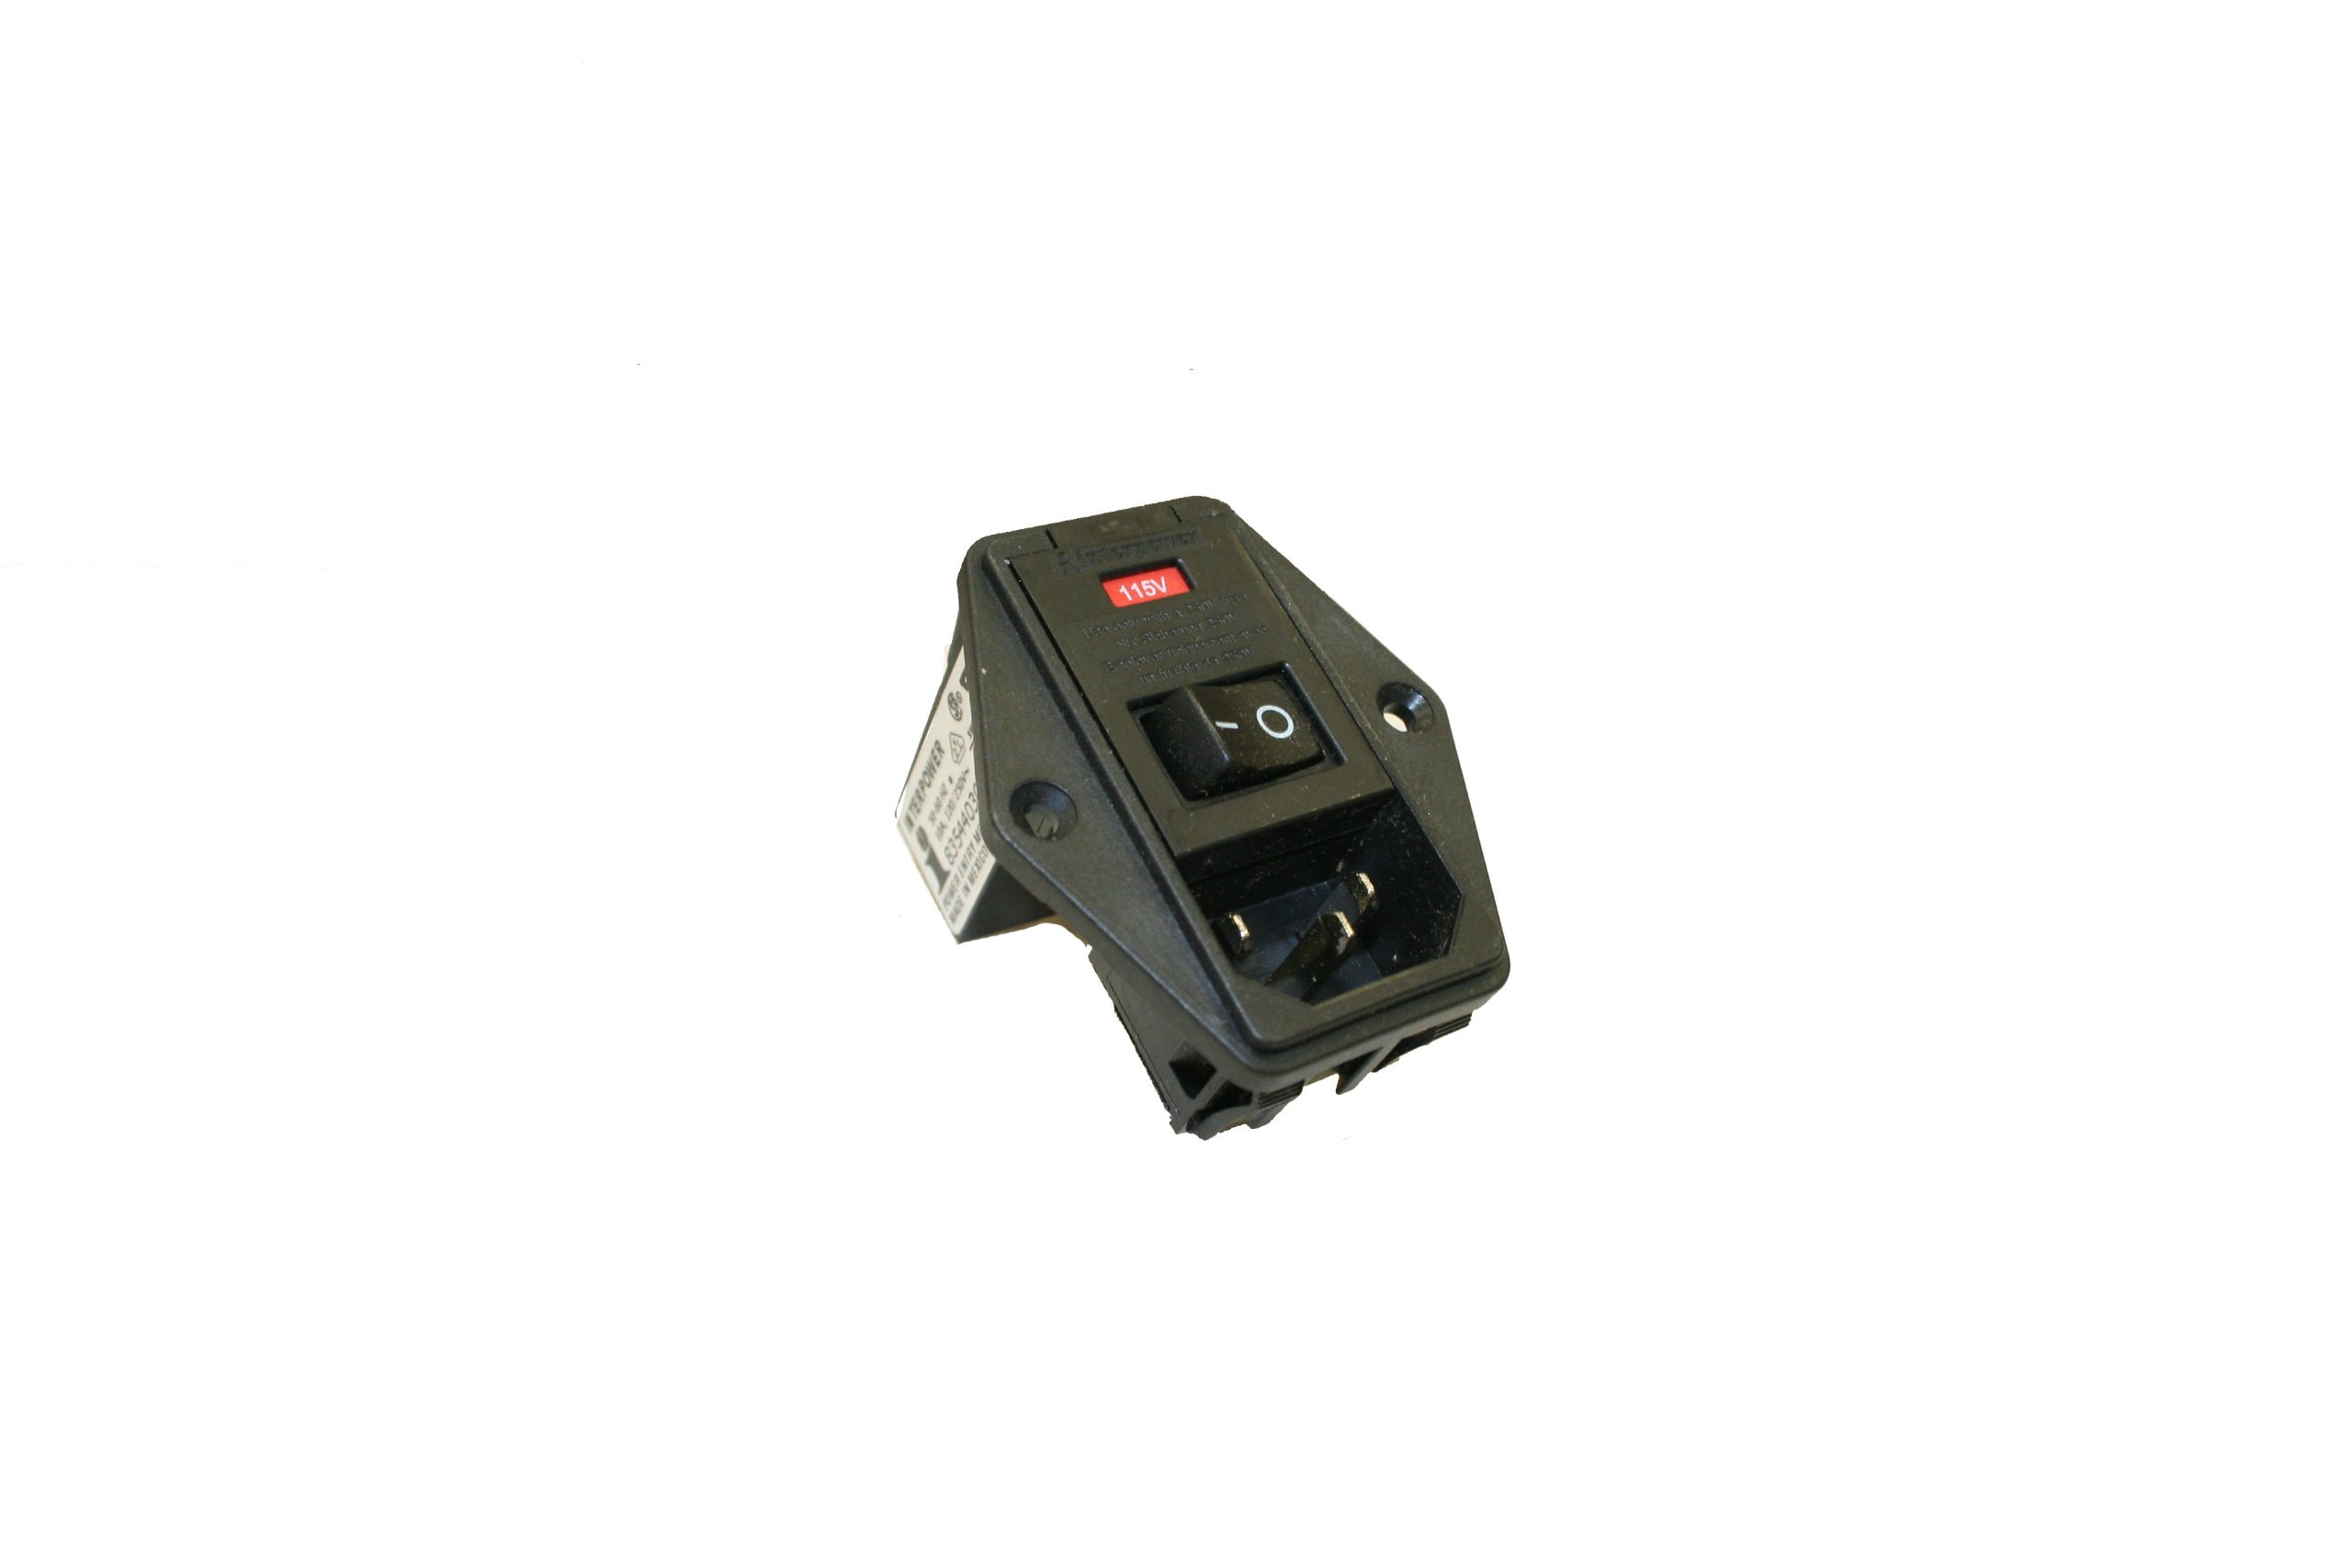 Interpower 83544030 Four Function Double Fused Screw Mount Module, C14 Inlet, Switch, Double Fused, Voltage Selector, 10A Current Rating, 120/250VAC Voltage Rating by Interpower